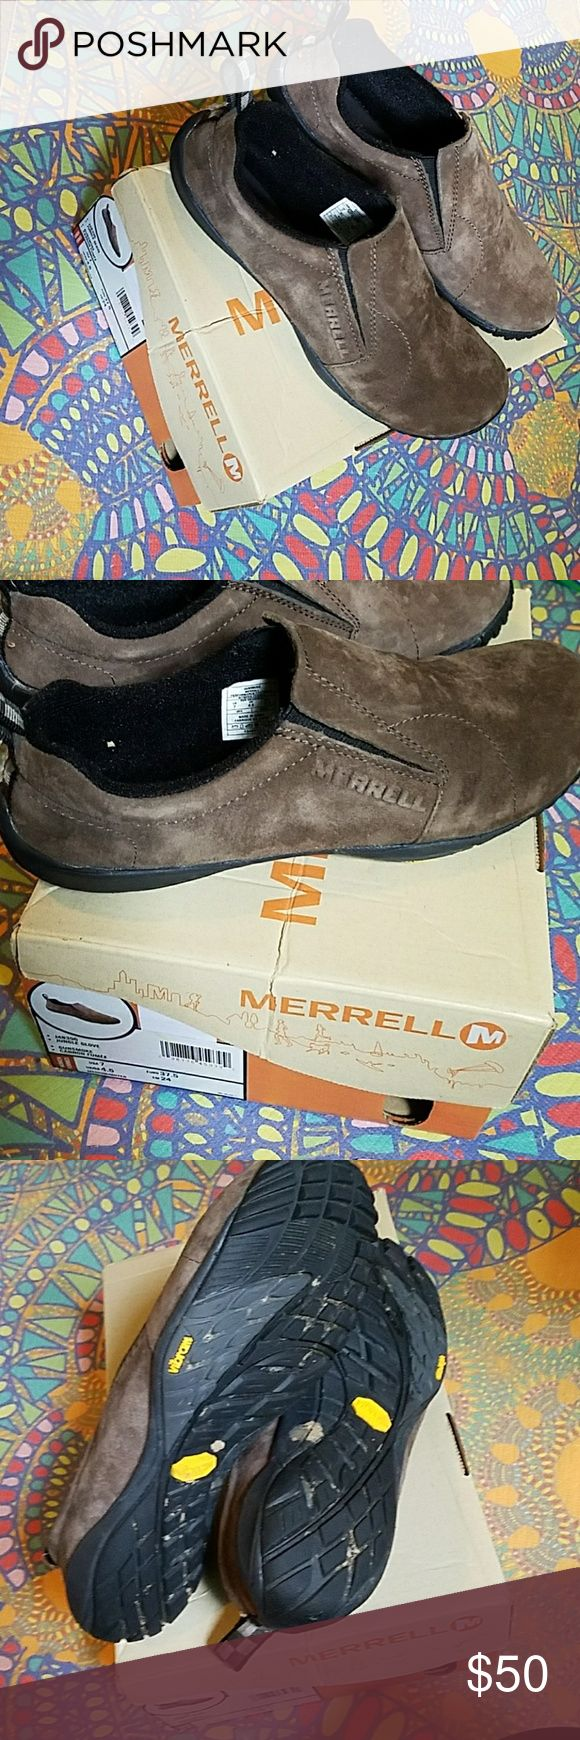 Merrell Jungle Glove Very lightly worn Brown barefoot trainers. Worn a handful of times so the soles look amazing!   FEEL FREE TO MAKE AN OFFER! Merrell Shoes